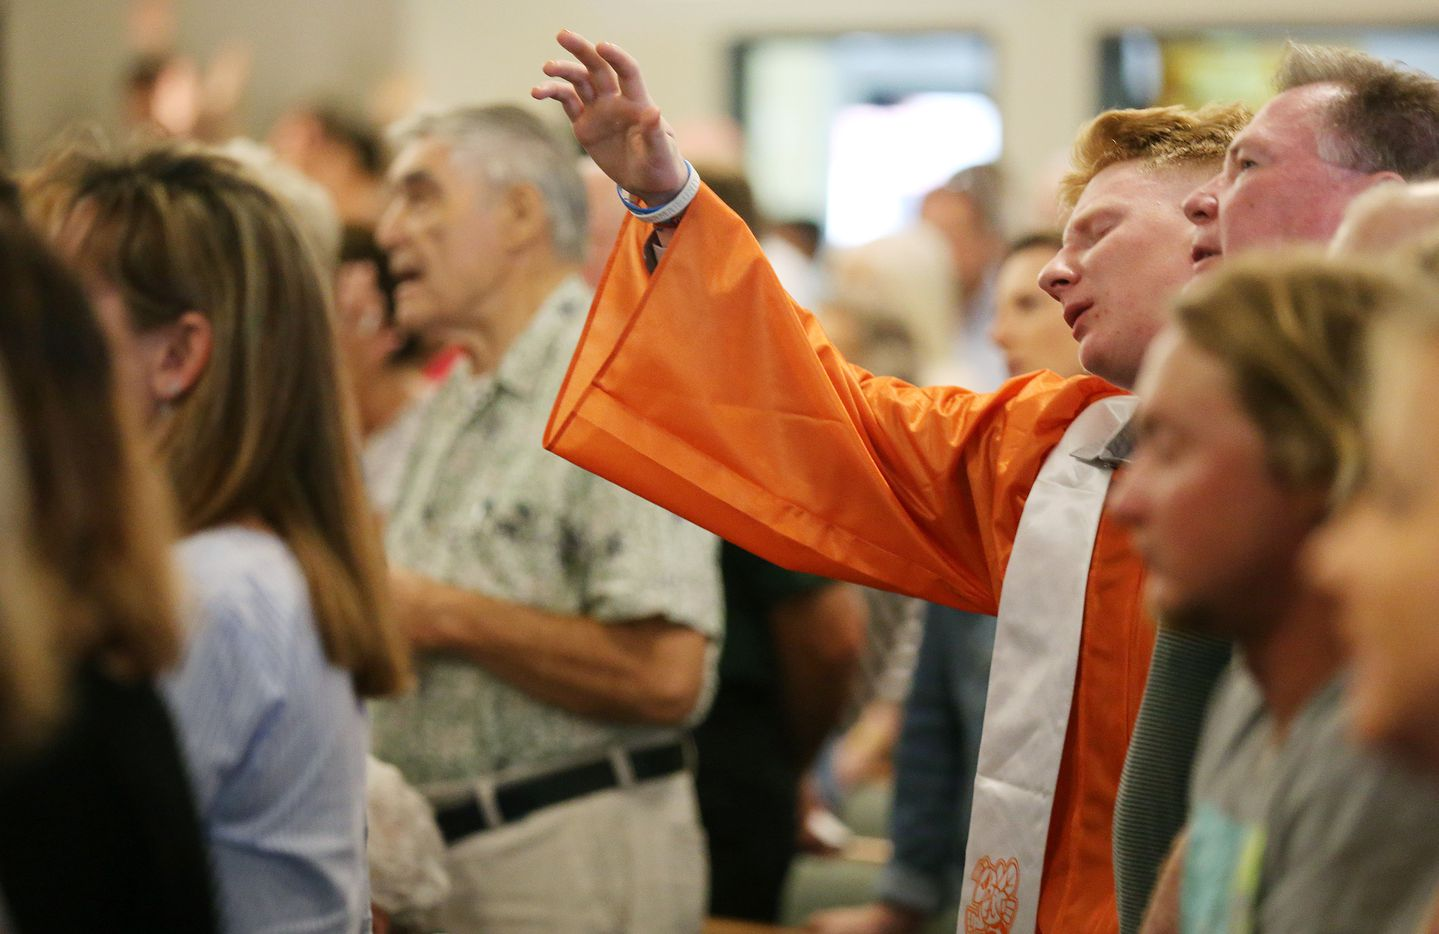 After being recognized with other graduating high school seniors, a student worships during service at Arcadia First Baptist Church in Santa Fe